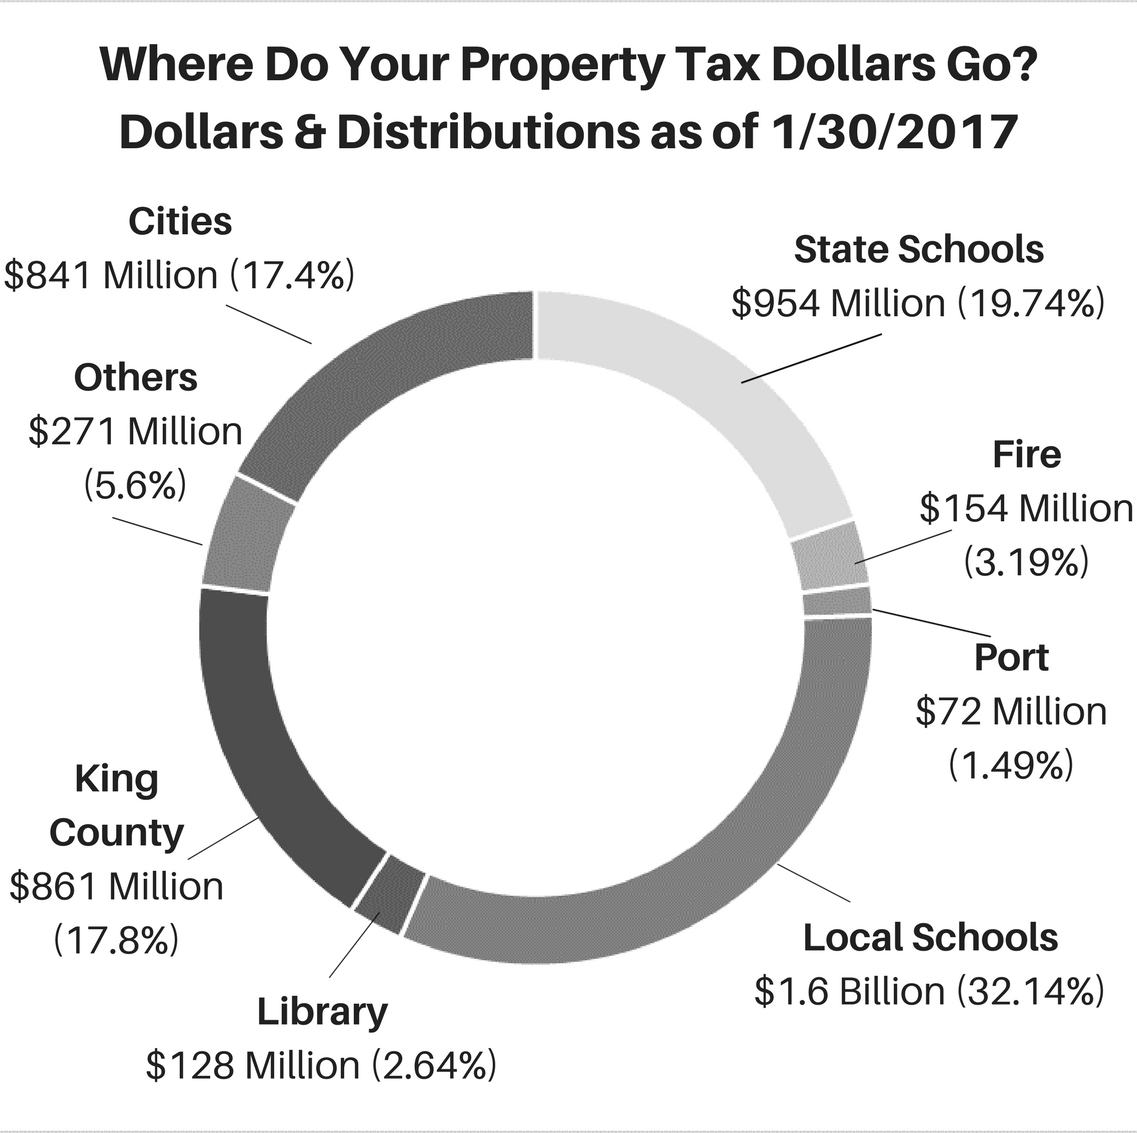 King County Property Taxes Due